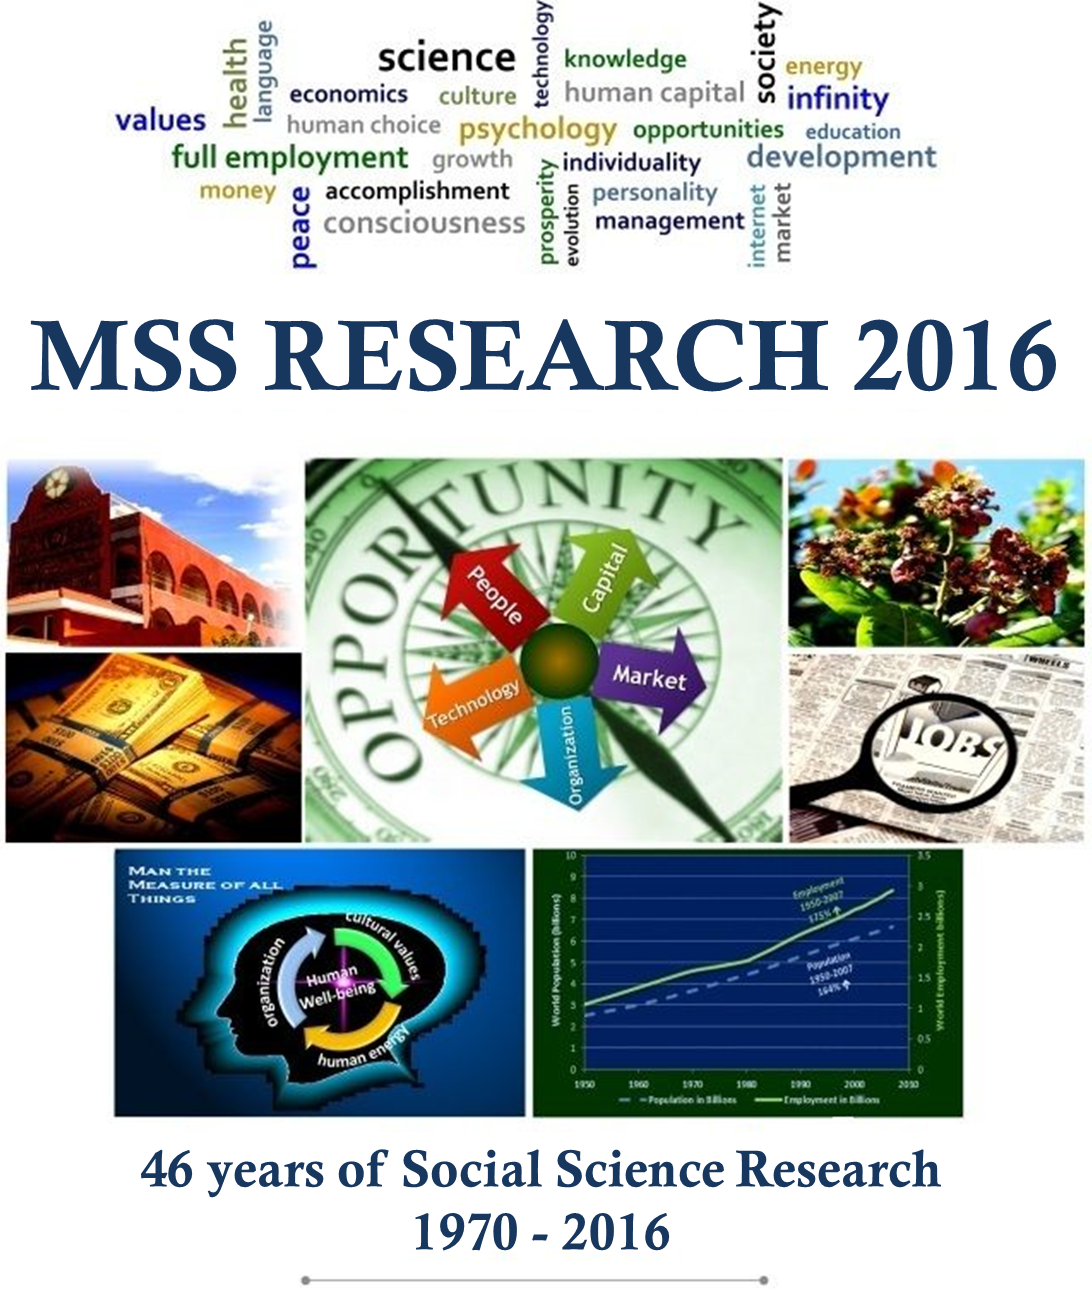 MSS Research